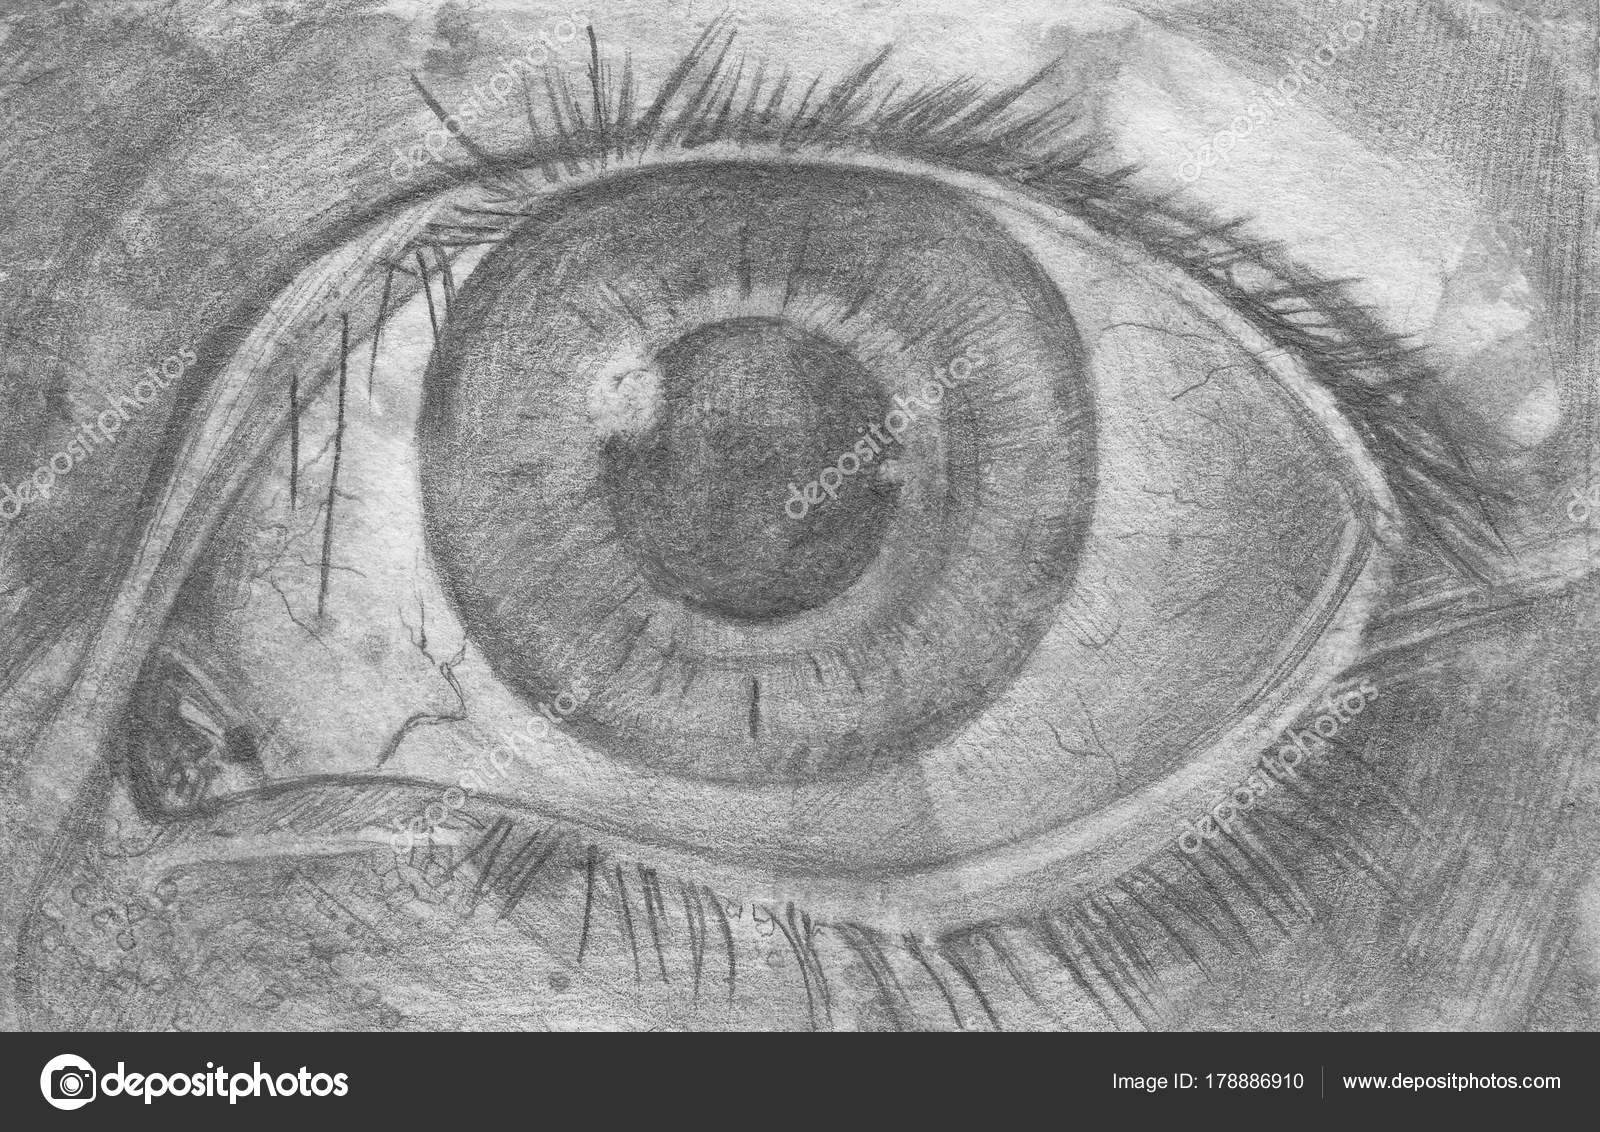 Eyes pencil sketch of eyes stock photo